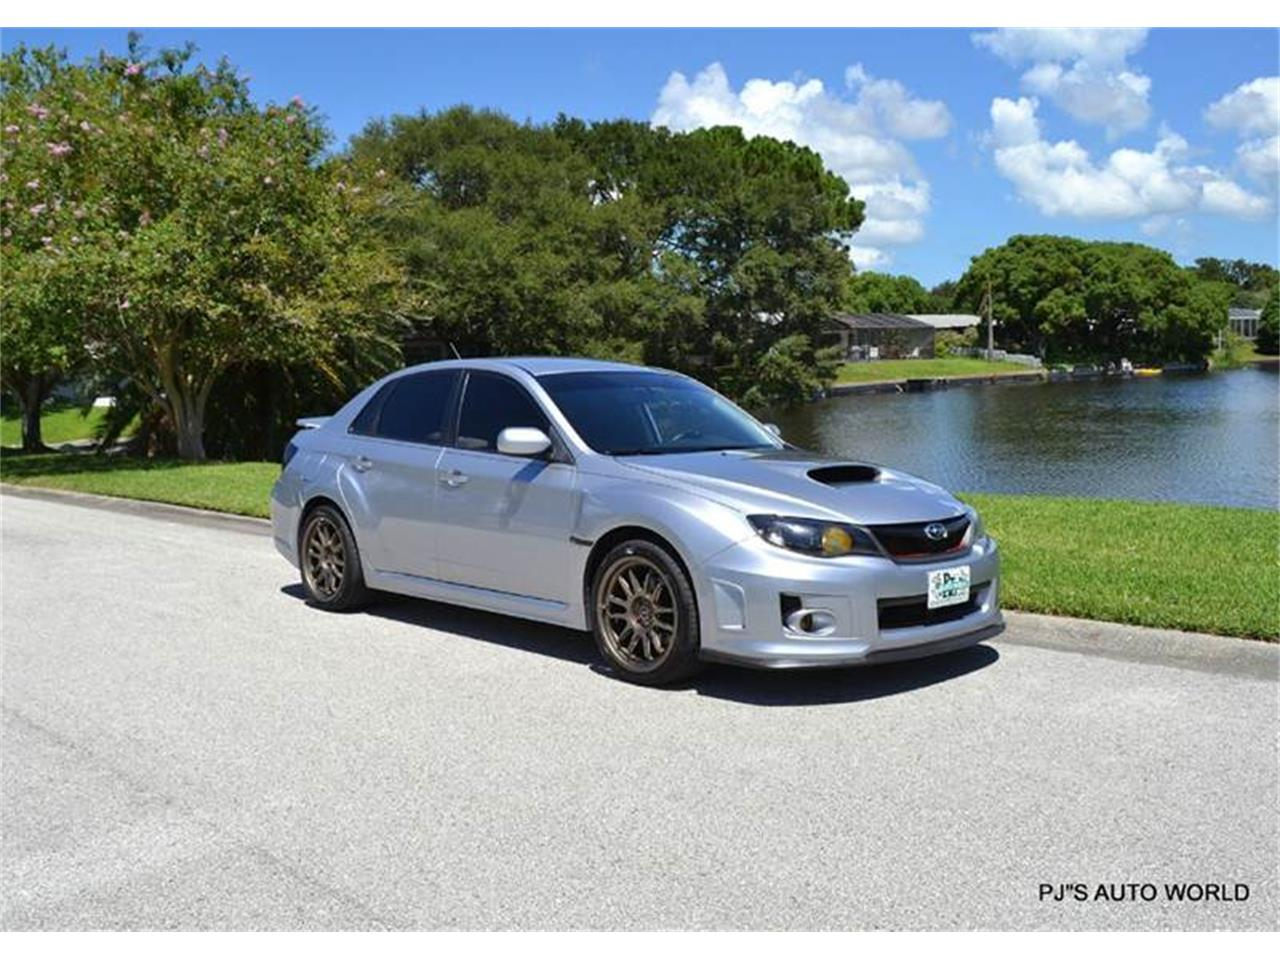 Large Picture of 2013 Impreza located in Florida - $19,900.00 - J6WM